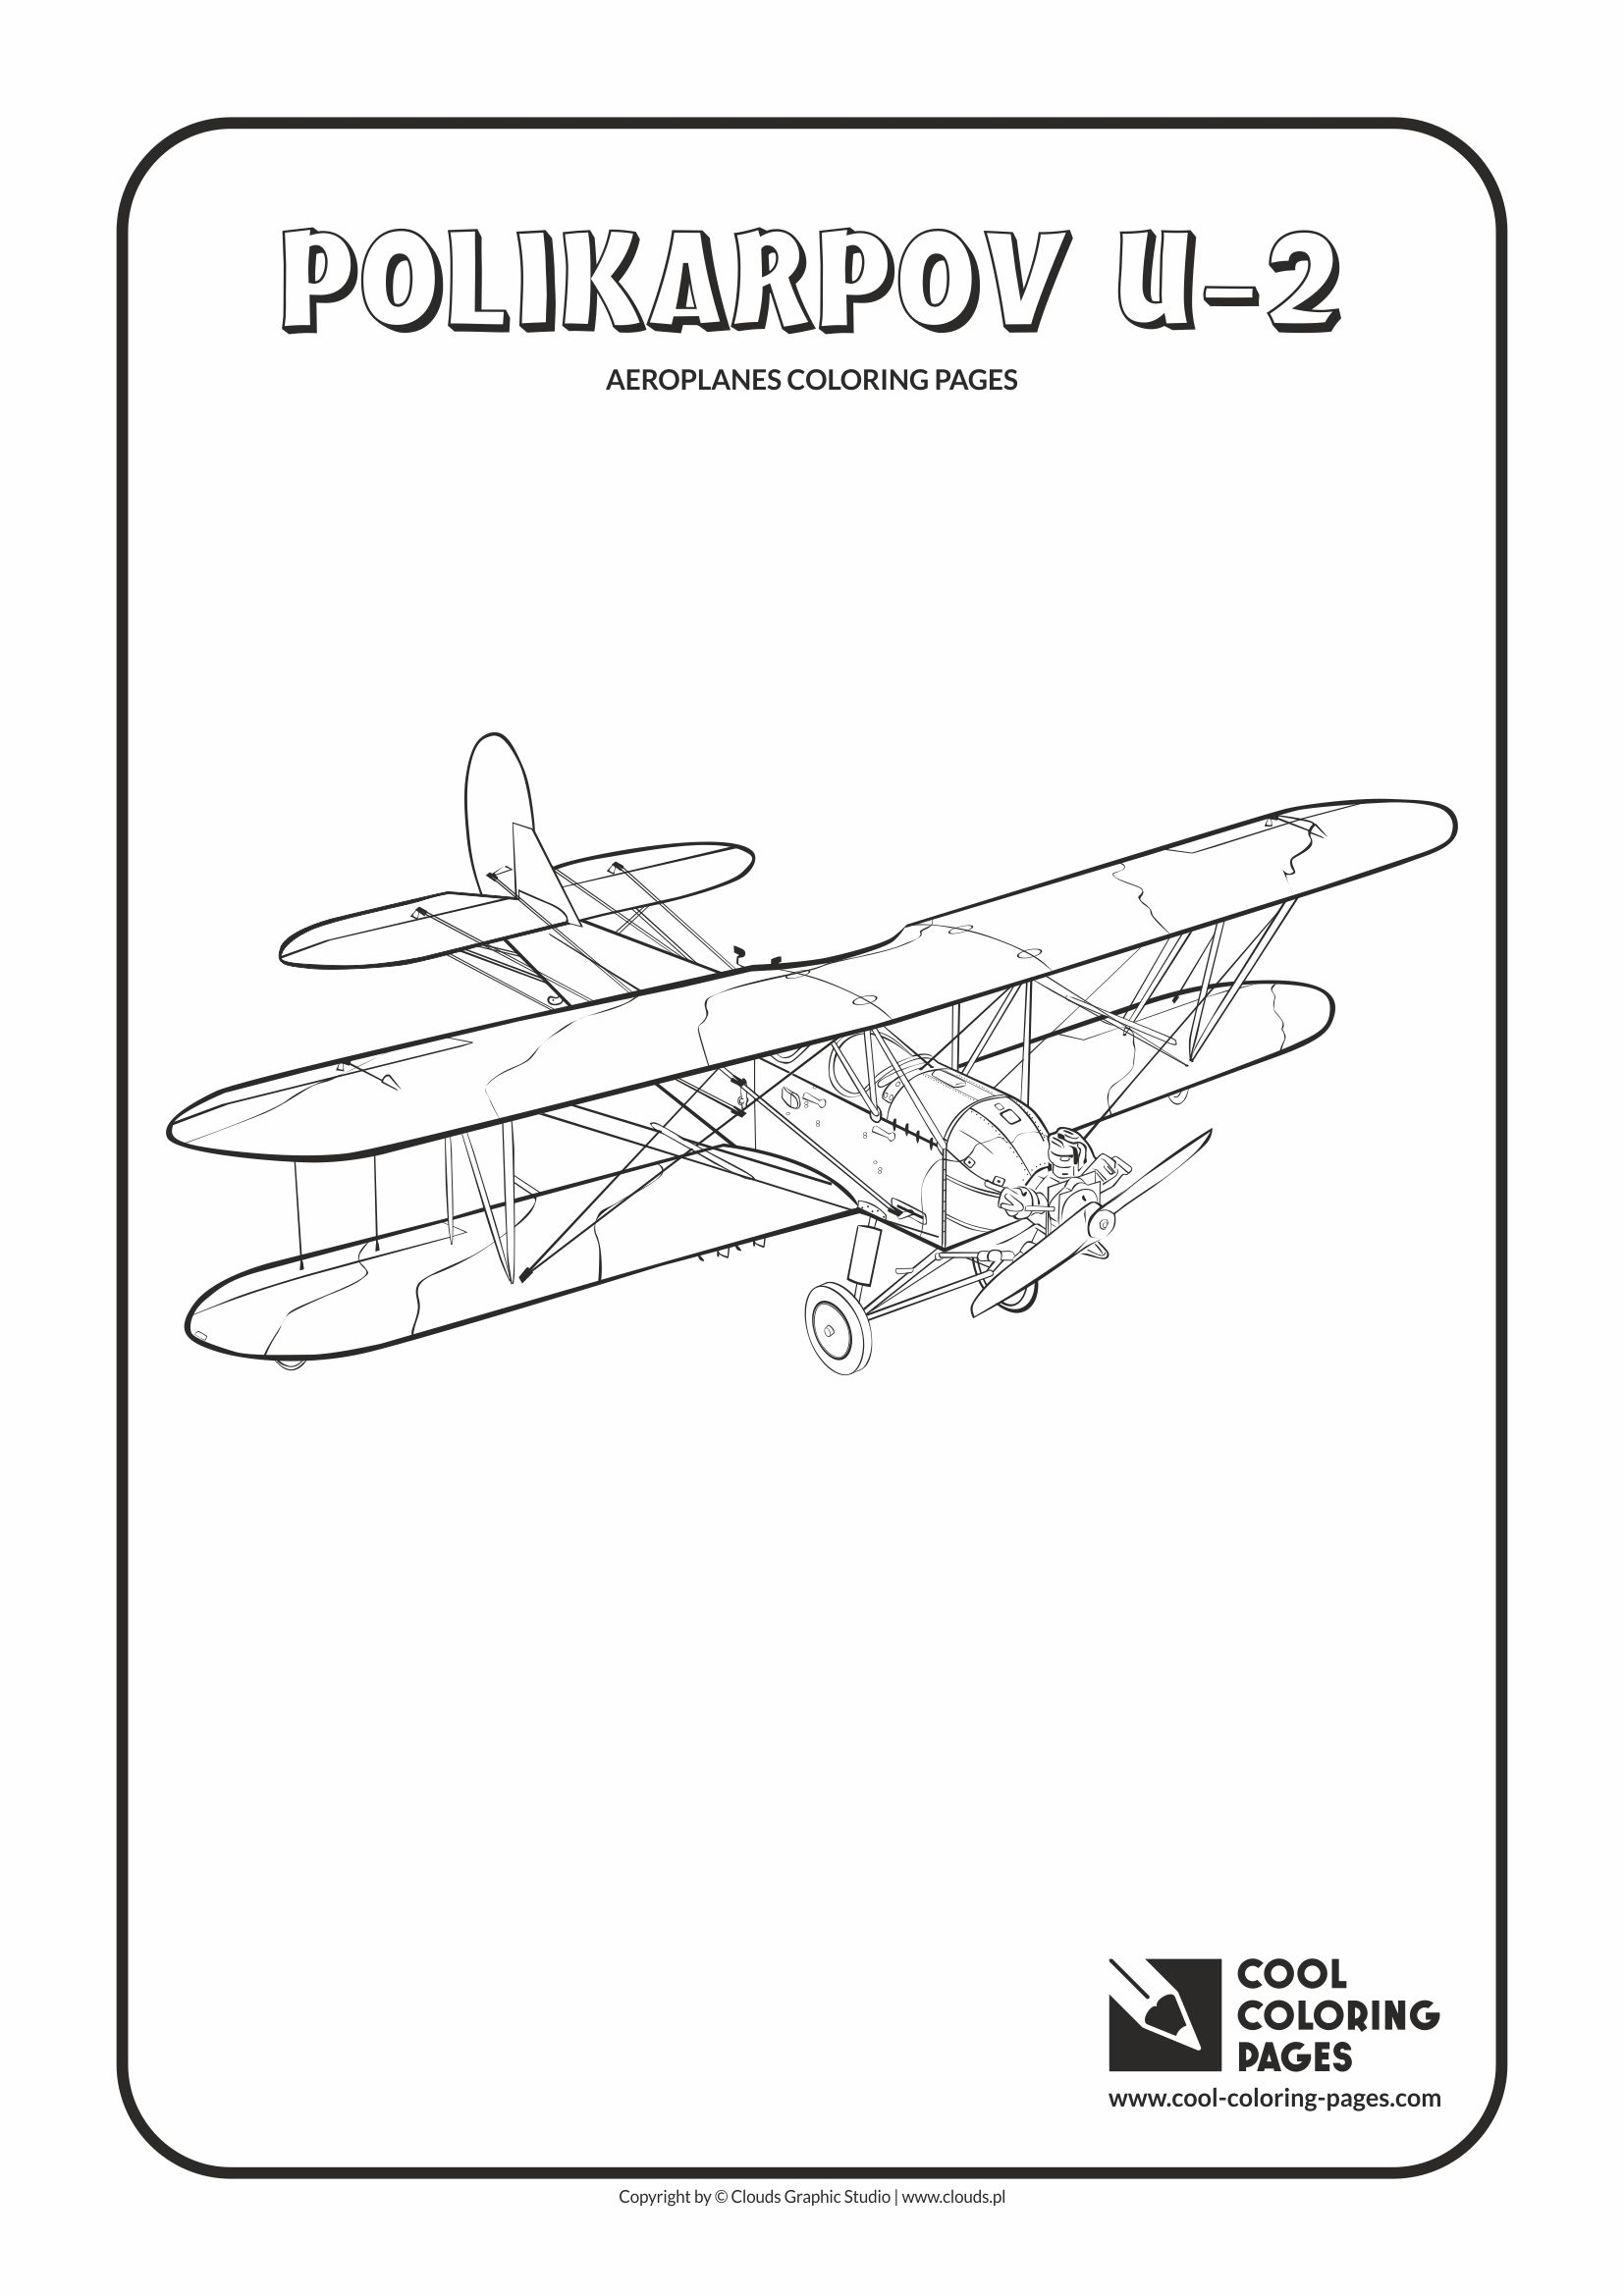 Cool Coloring Pages - Vehicles / Polikarpov U-2 po-2 / Coloring page with Polikarpov U-2 po-2